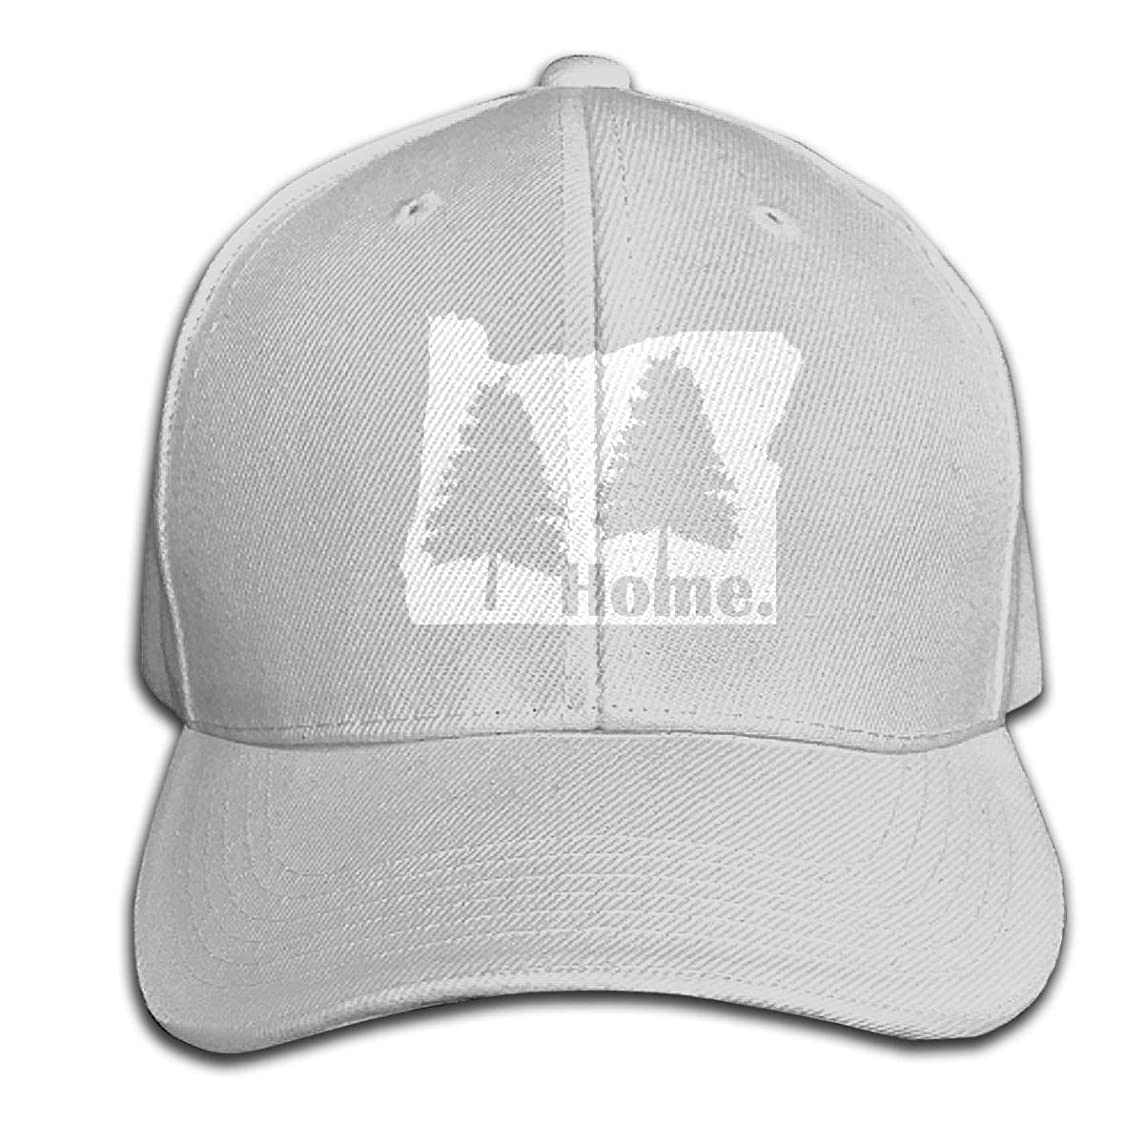 3cb1f988d1a485 ... NDFGR Oregon Pine Trees Home Unisex Plain Cotton Low Profile Baseball  Cap Hat,Novelty Baseball